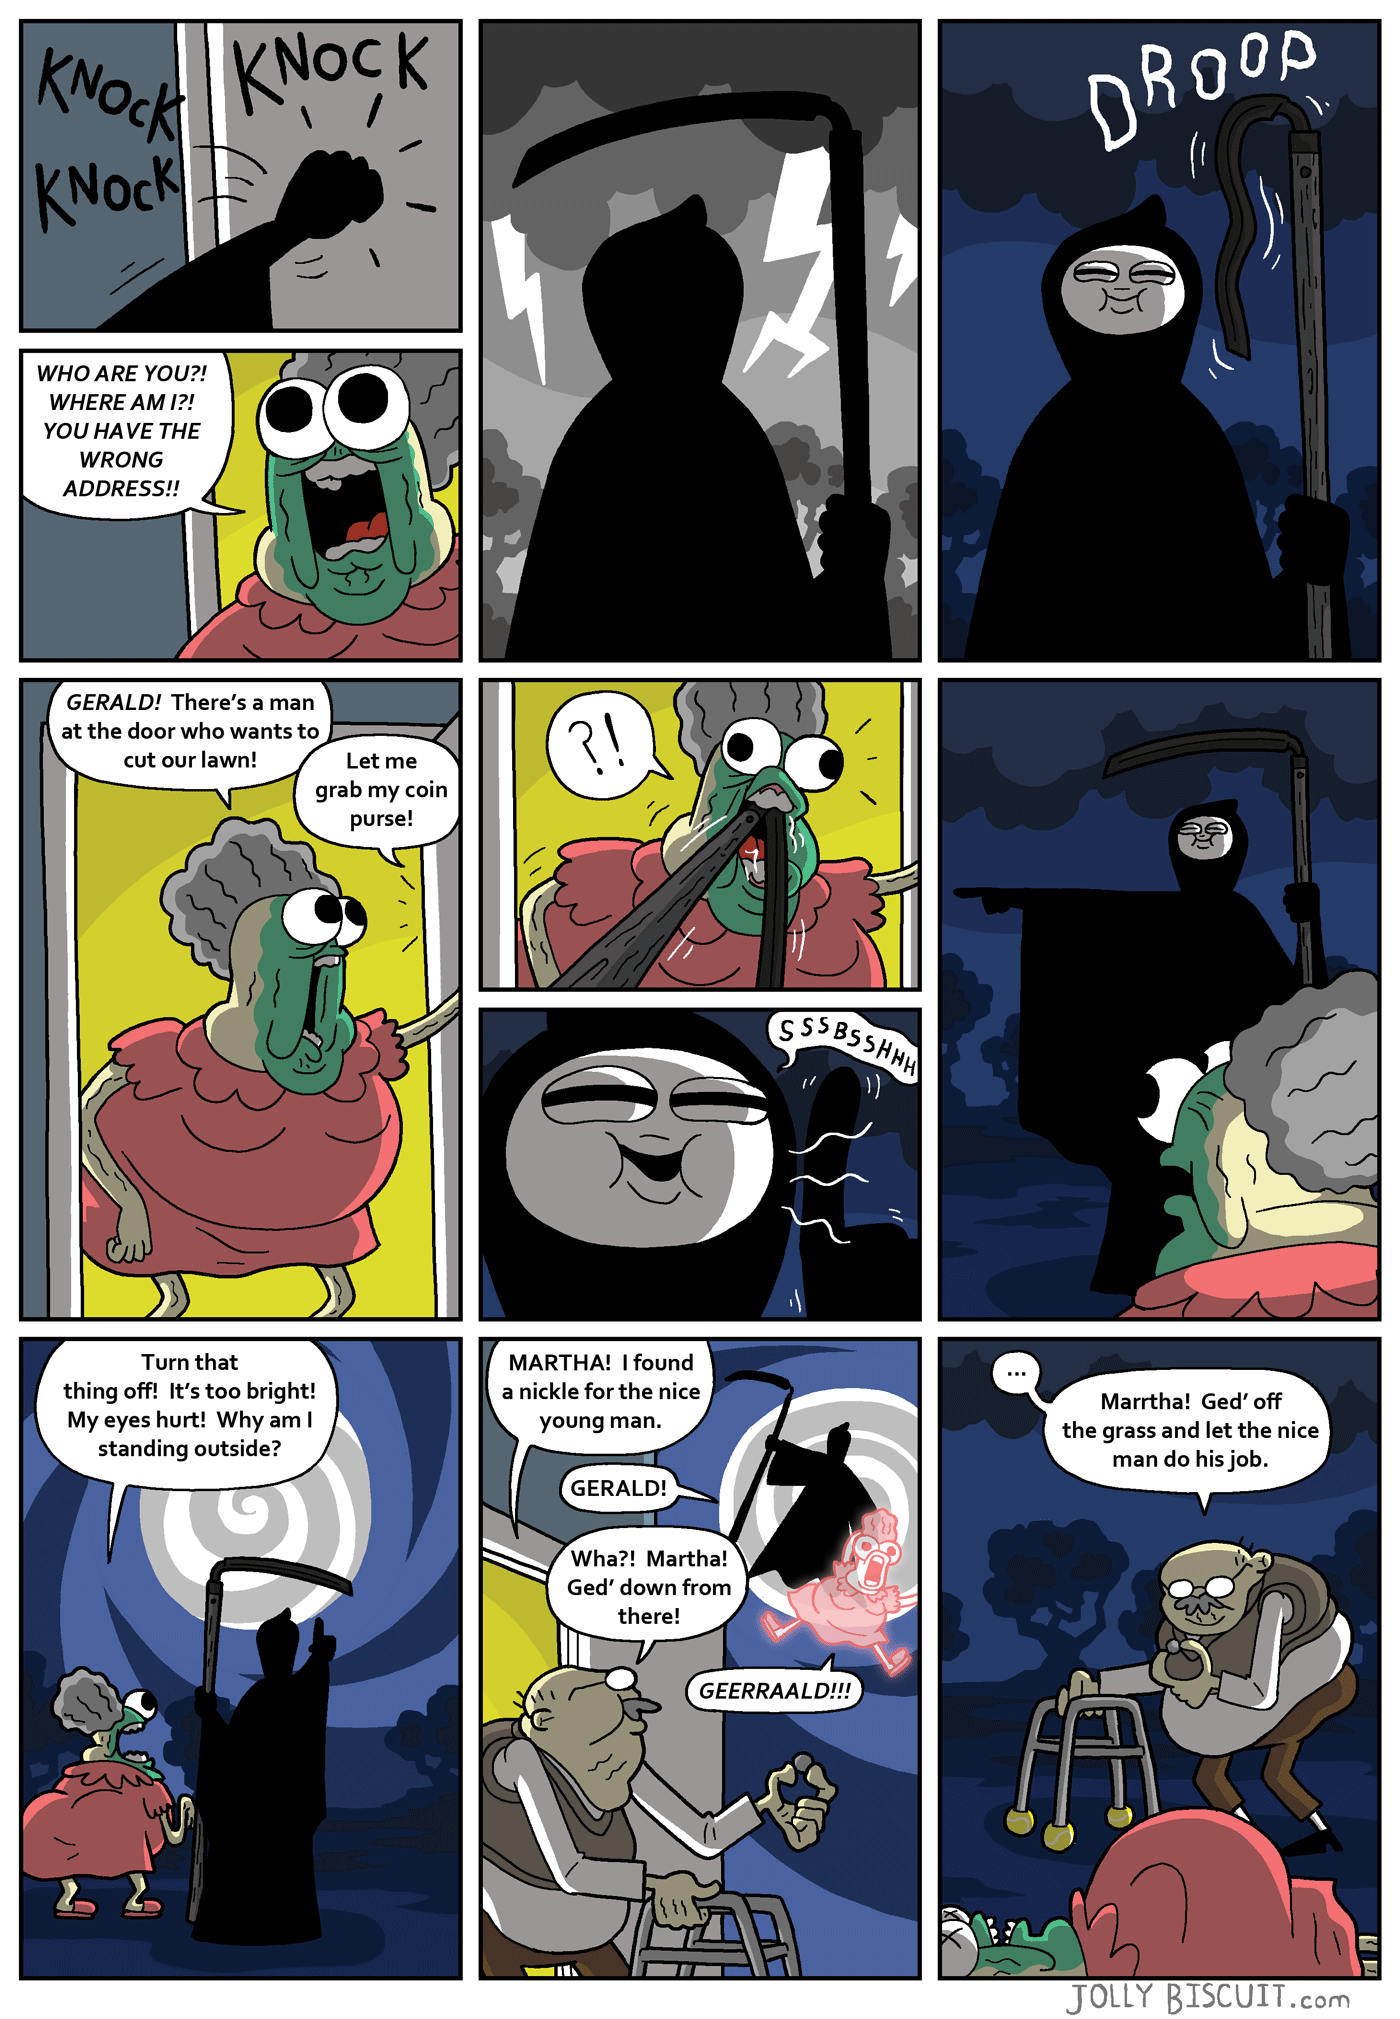 Mr Death's reaping services